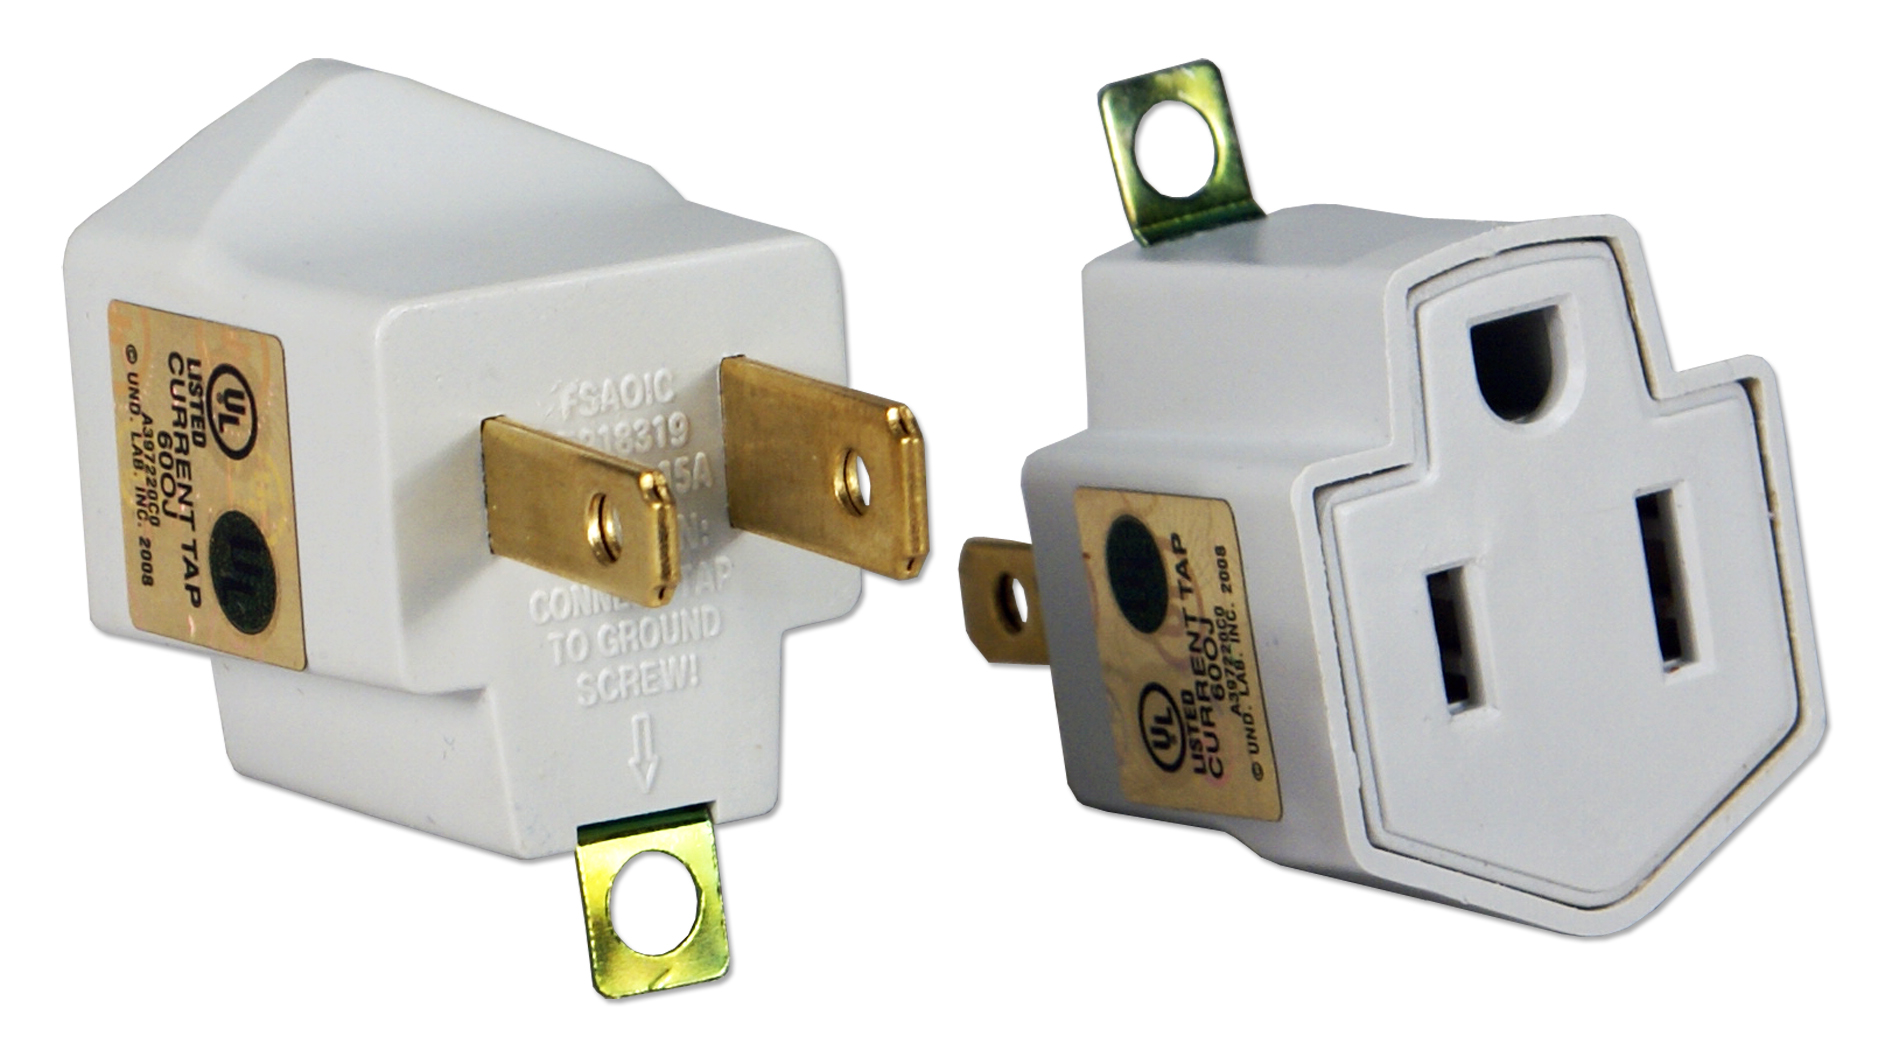 Pa 2pk 2 Pack 3 Prong To Power Adaptor With Grounding Vs Outlets Highres 300dpi Image